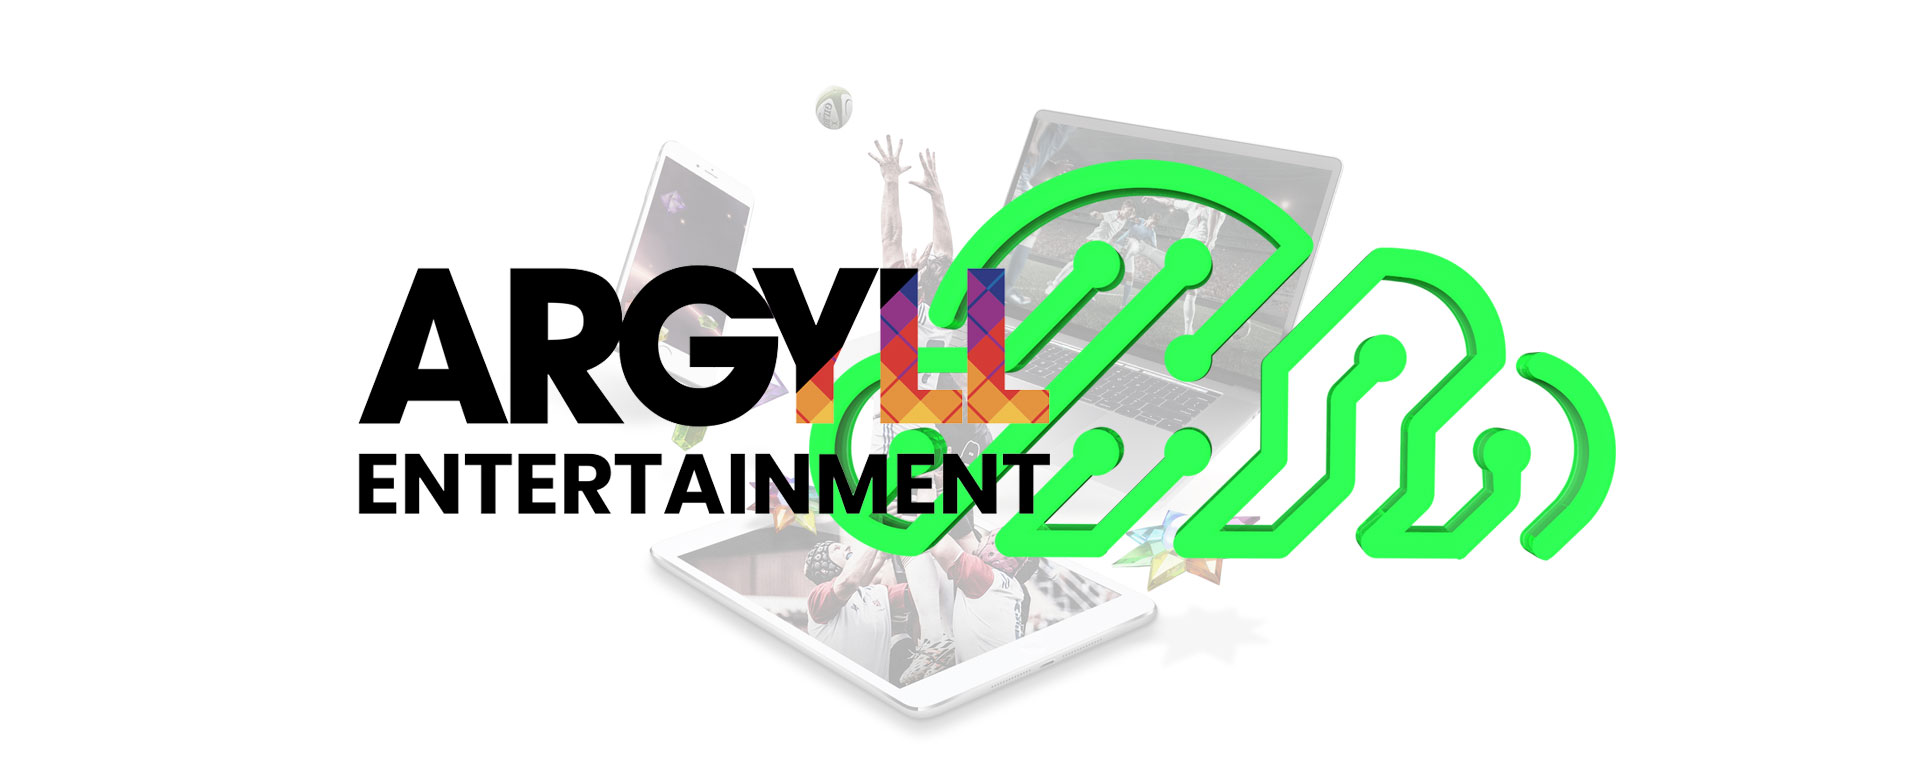 Argyll Entertainment partners with Enteractive